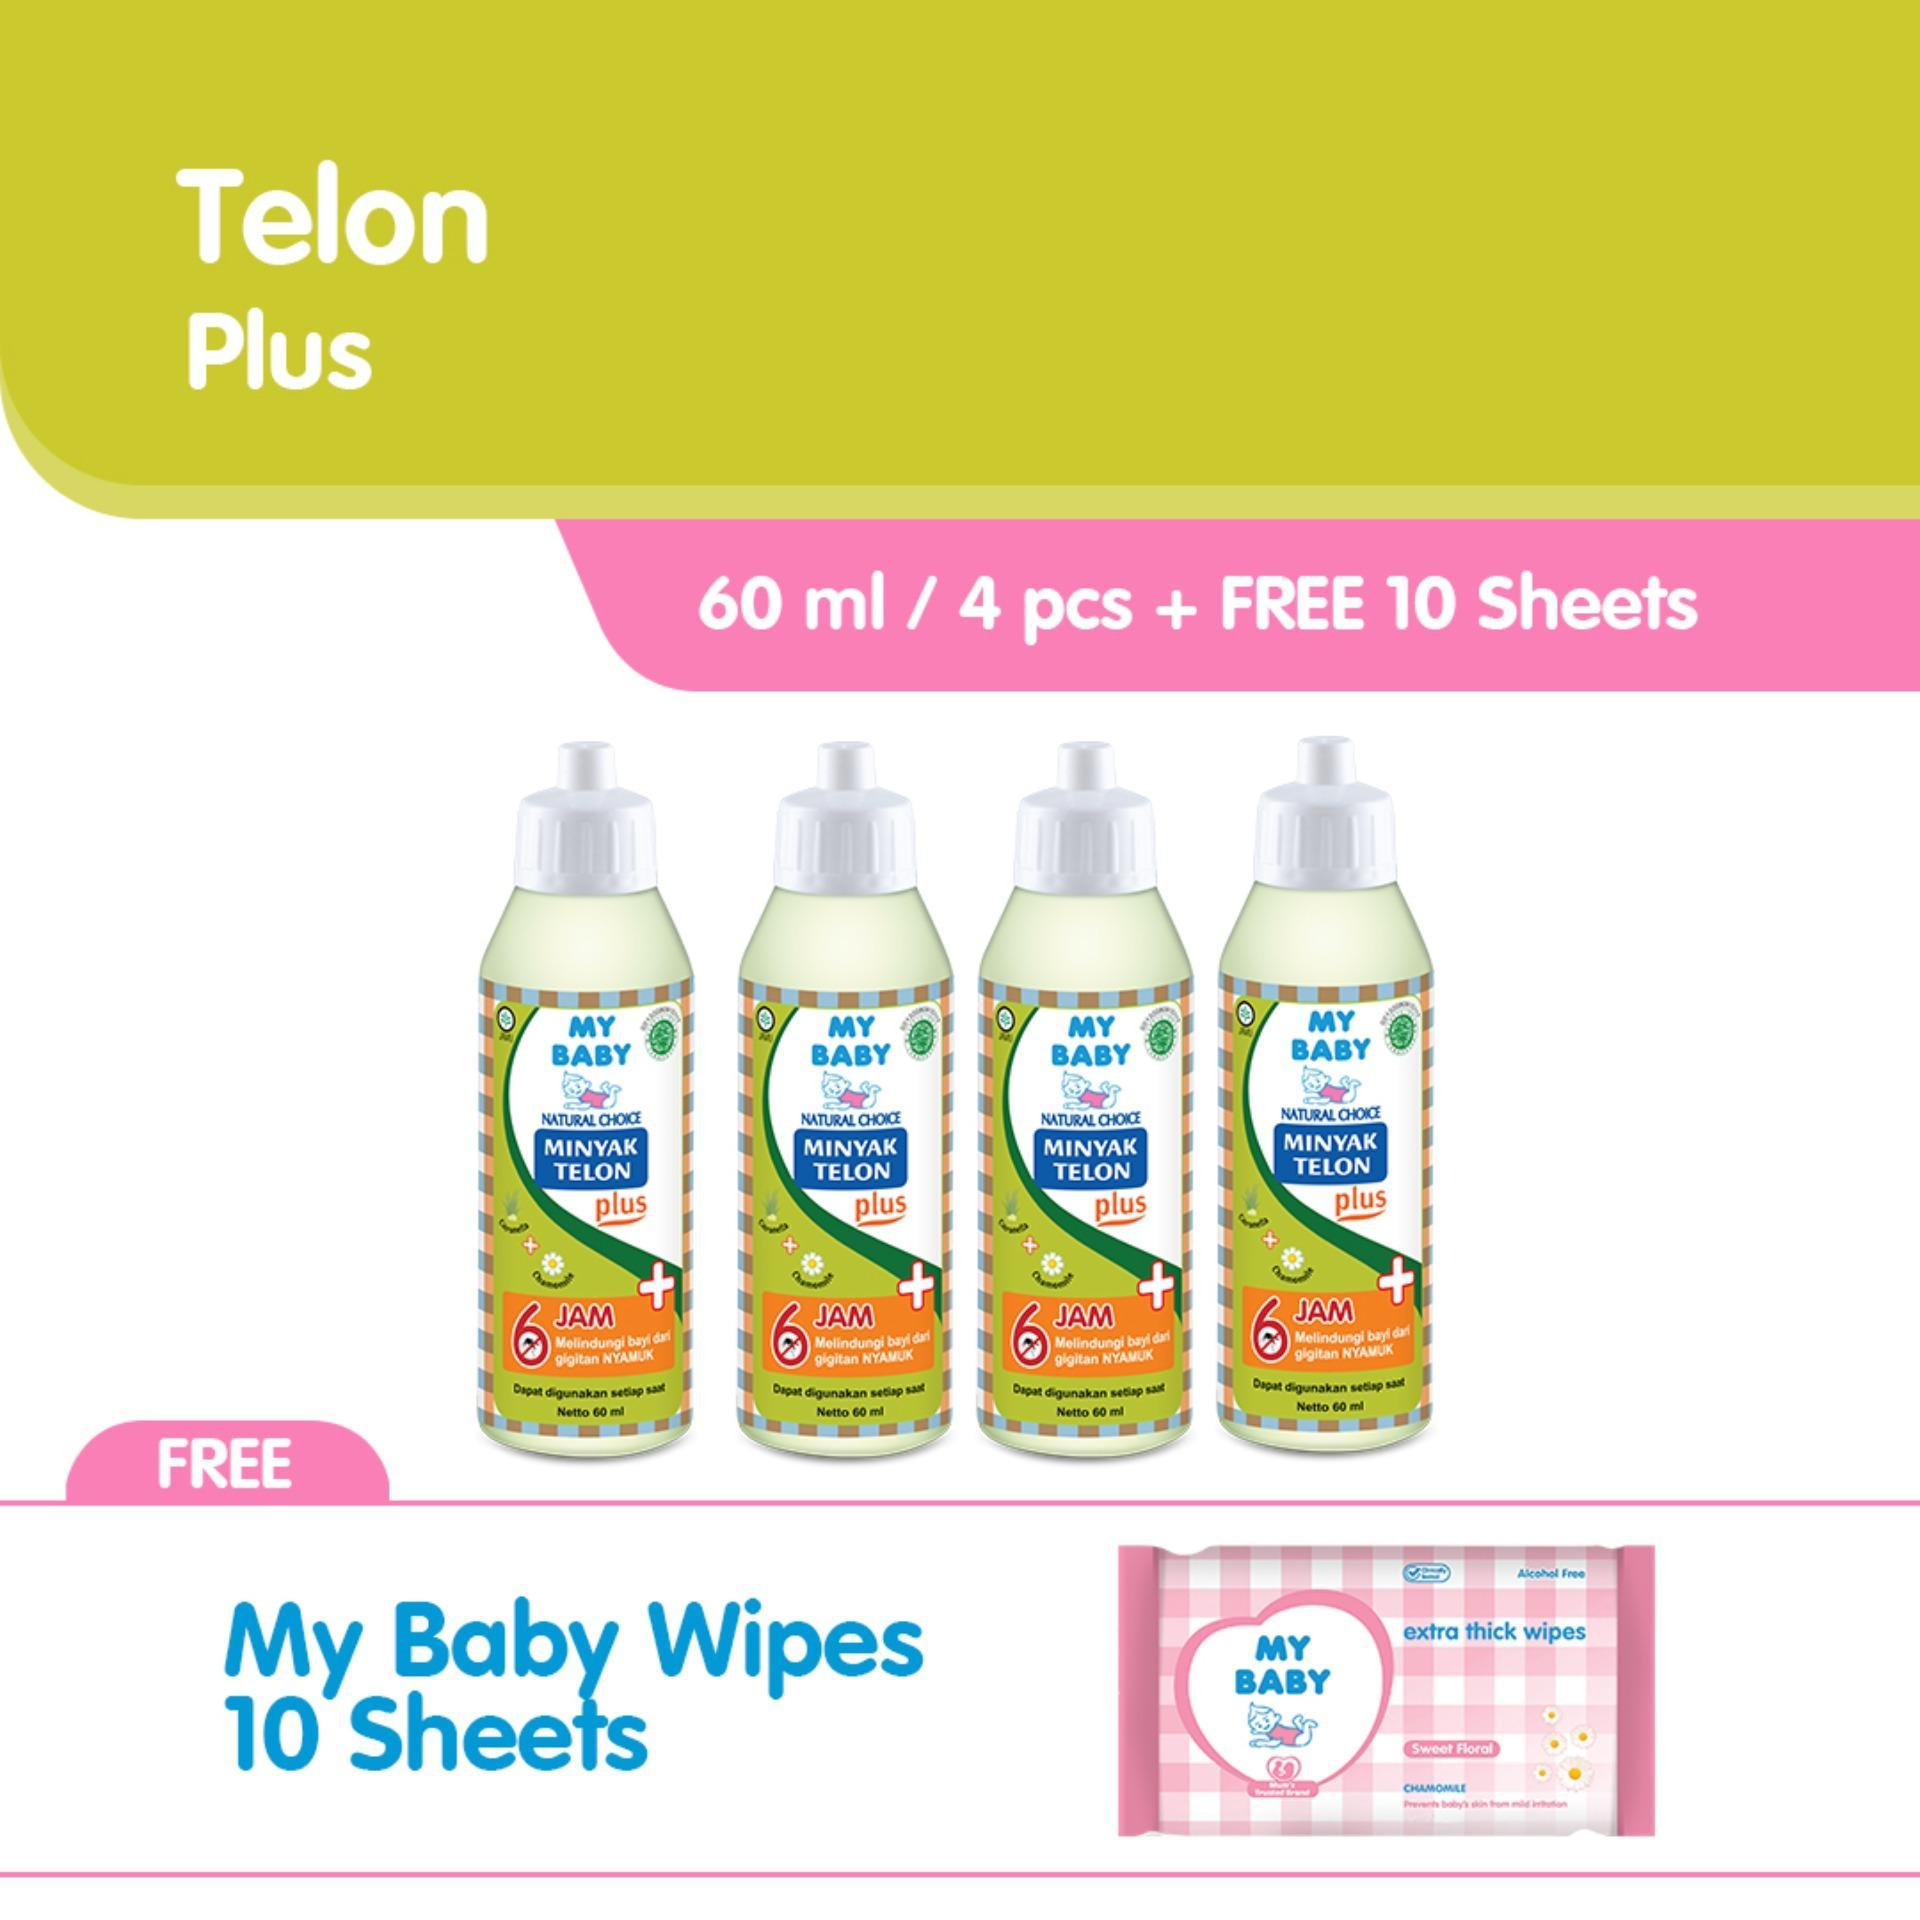 Buy Sell Cheapest Tissue Basah Wetkins Best Quality Product Deals Sweety Parfum Isi 80 Plus 4 Free My Baby Minyak Telon 60 Ml